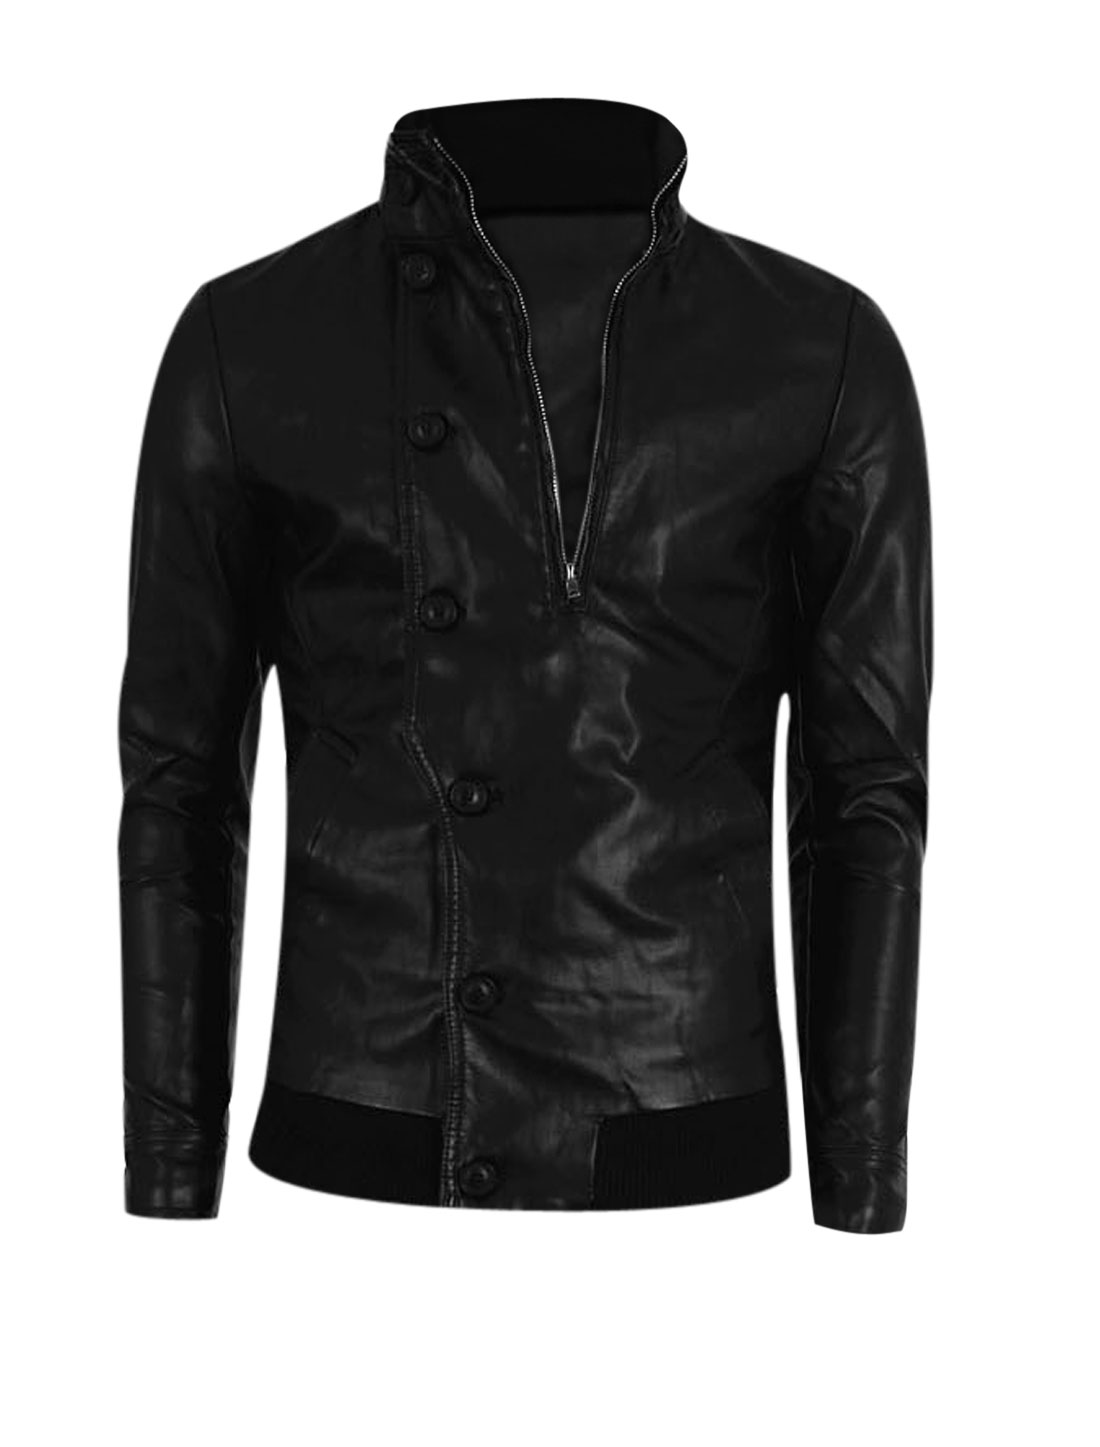 Men Stand Collar Double Zip Closed Chic Imitation Leather Jacket Black M